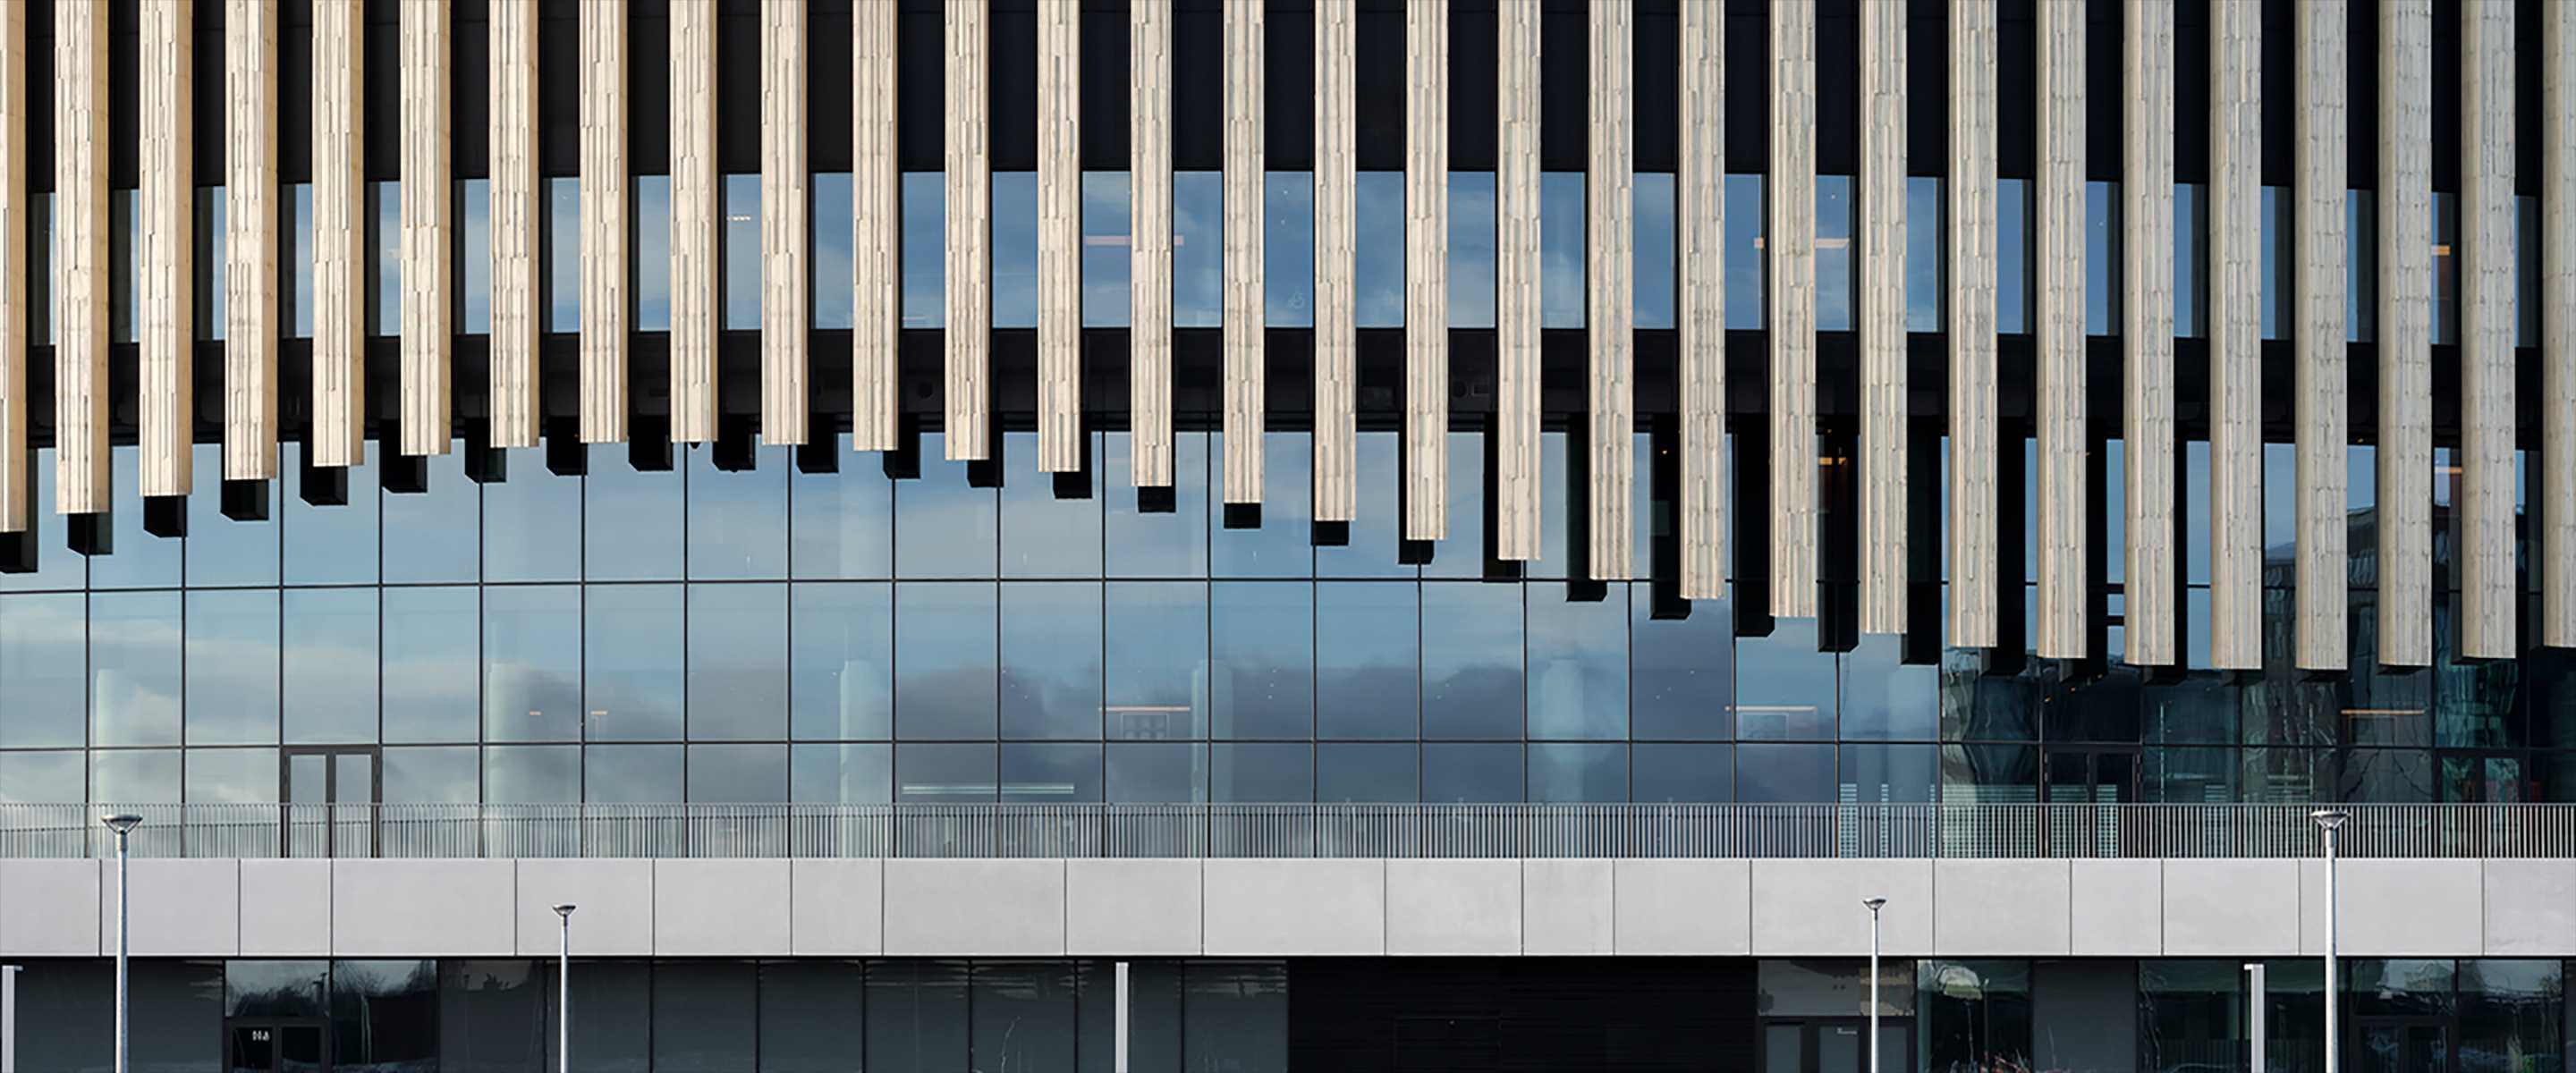 Close-up of a glass facade of a building with wooden beams coming from the top in a curved pattern